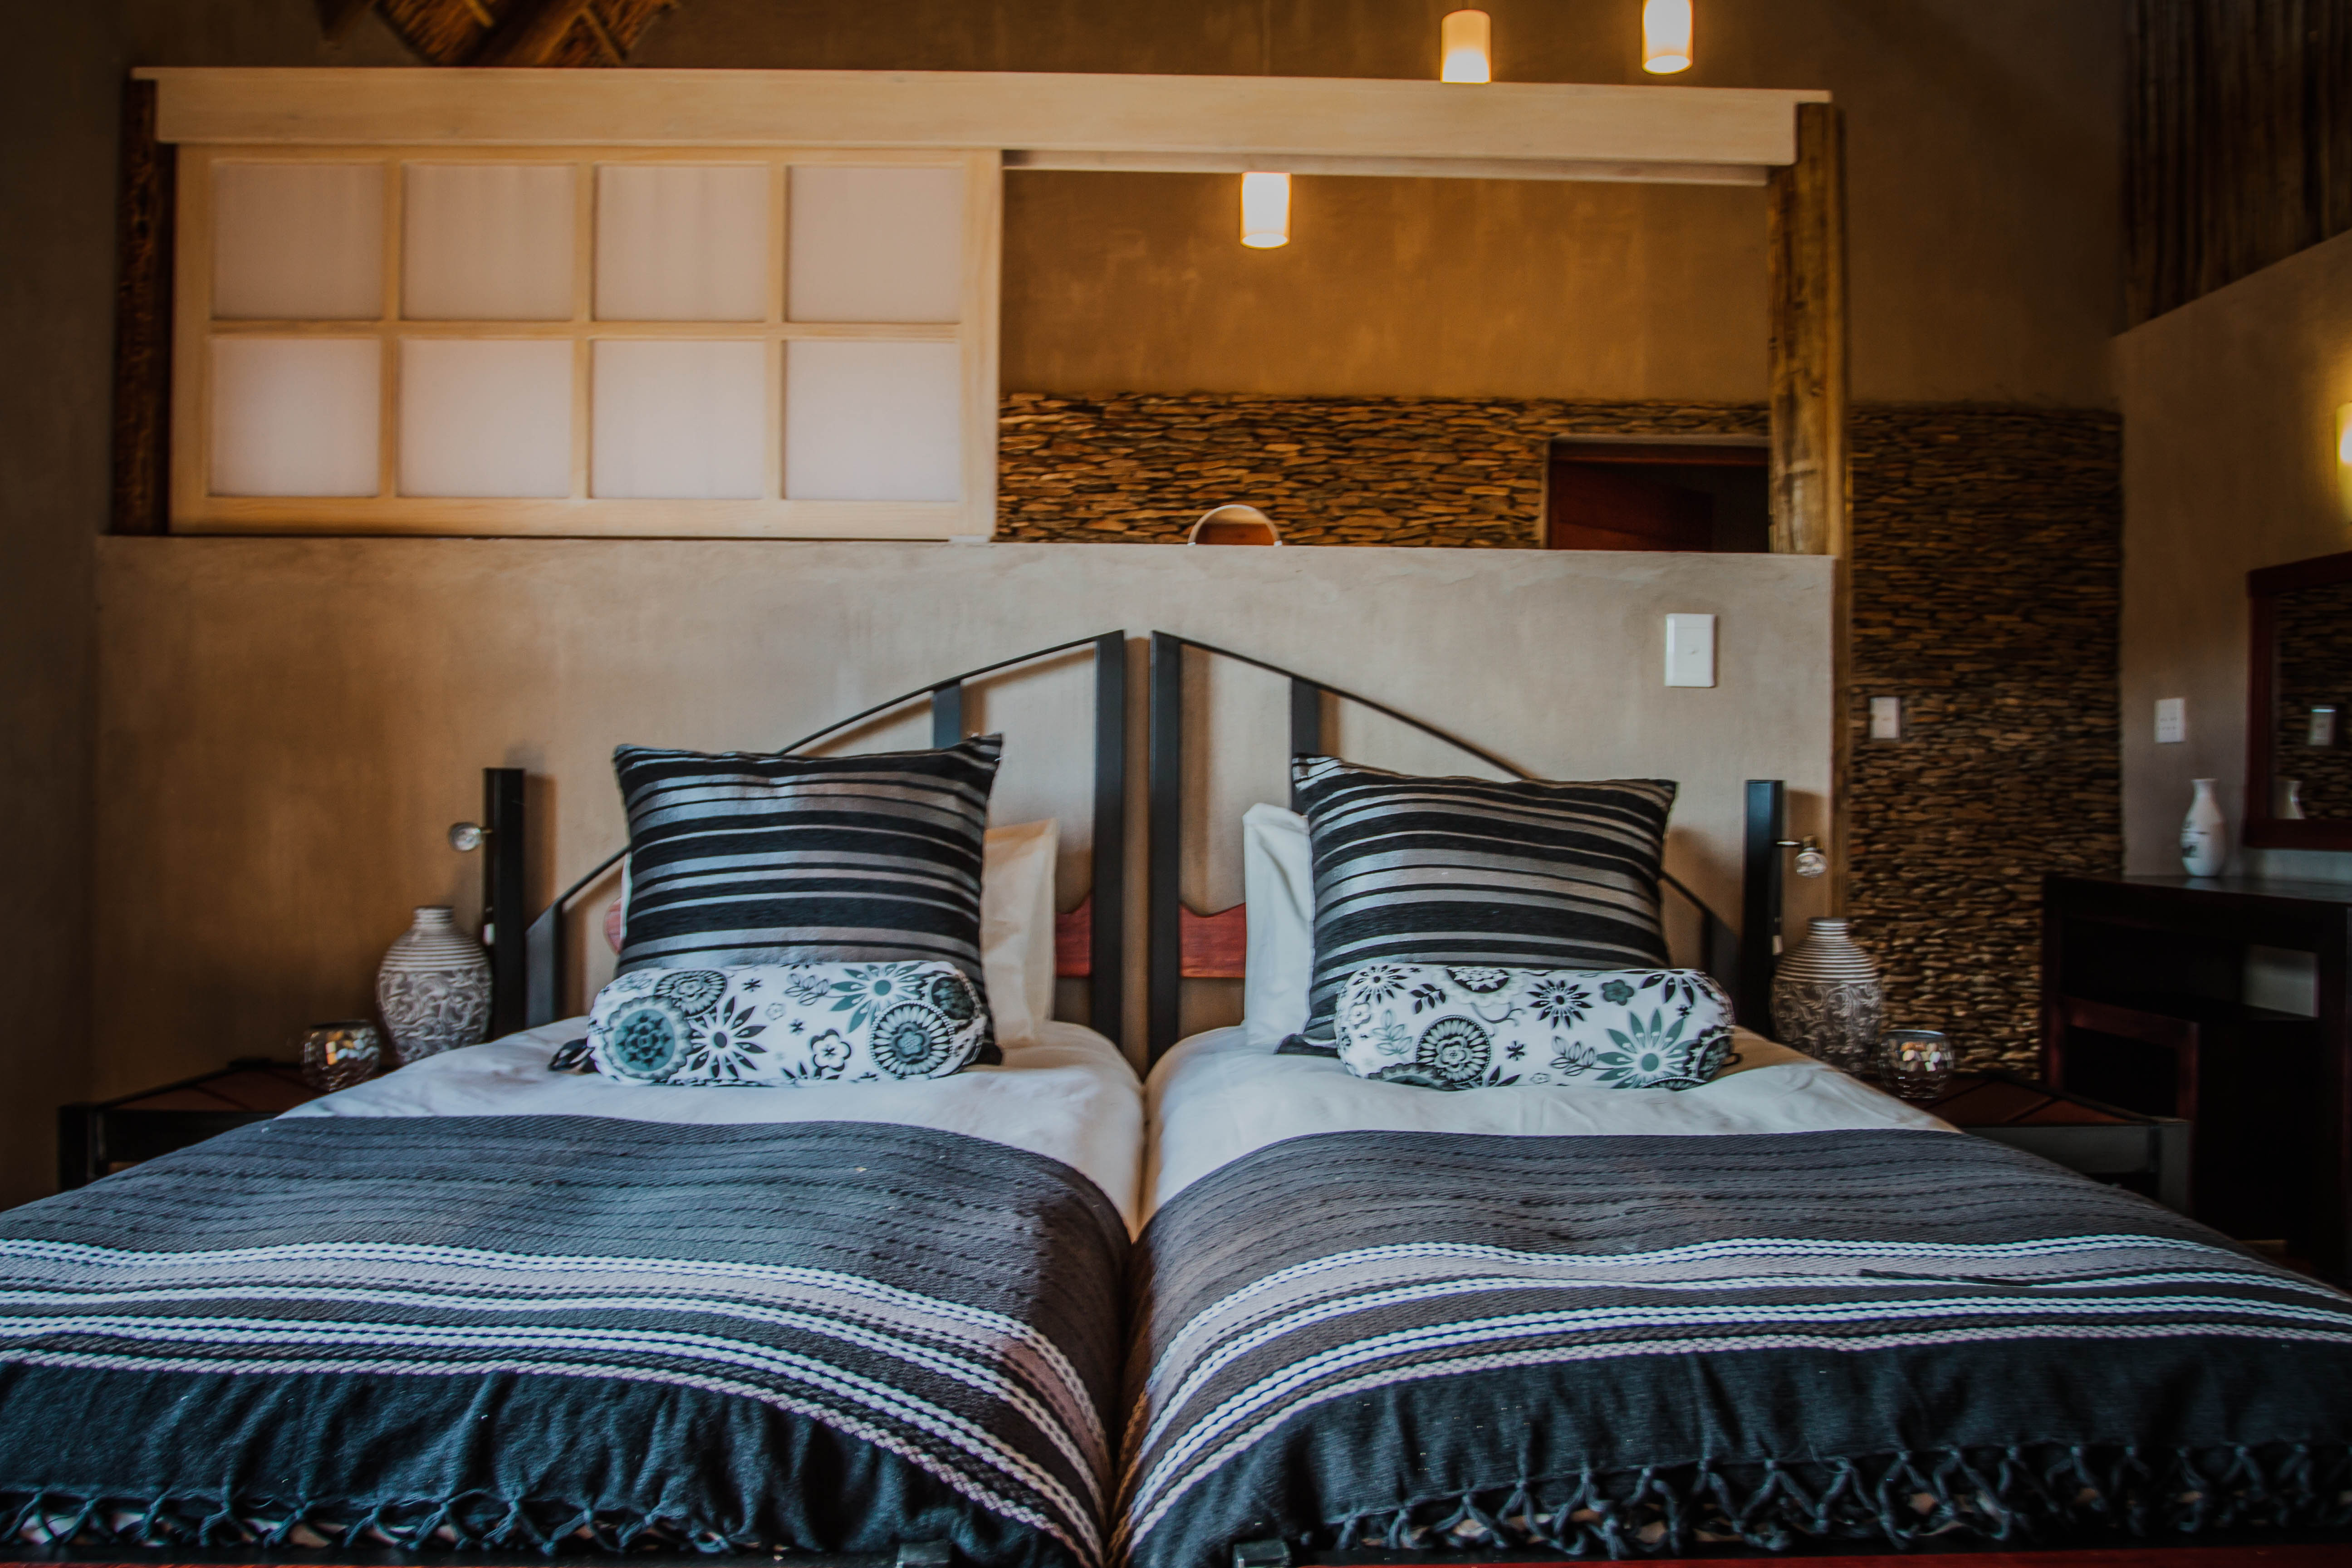 Self-Catering Swellendam, Accommodation Swellendam, Breede River, Self Catering Swellendam, Self Catering House, Self Catering Accommodation, self-catering accommodation